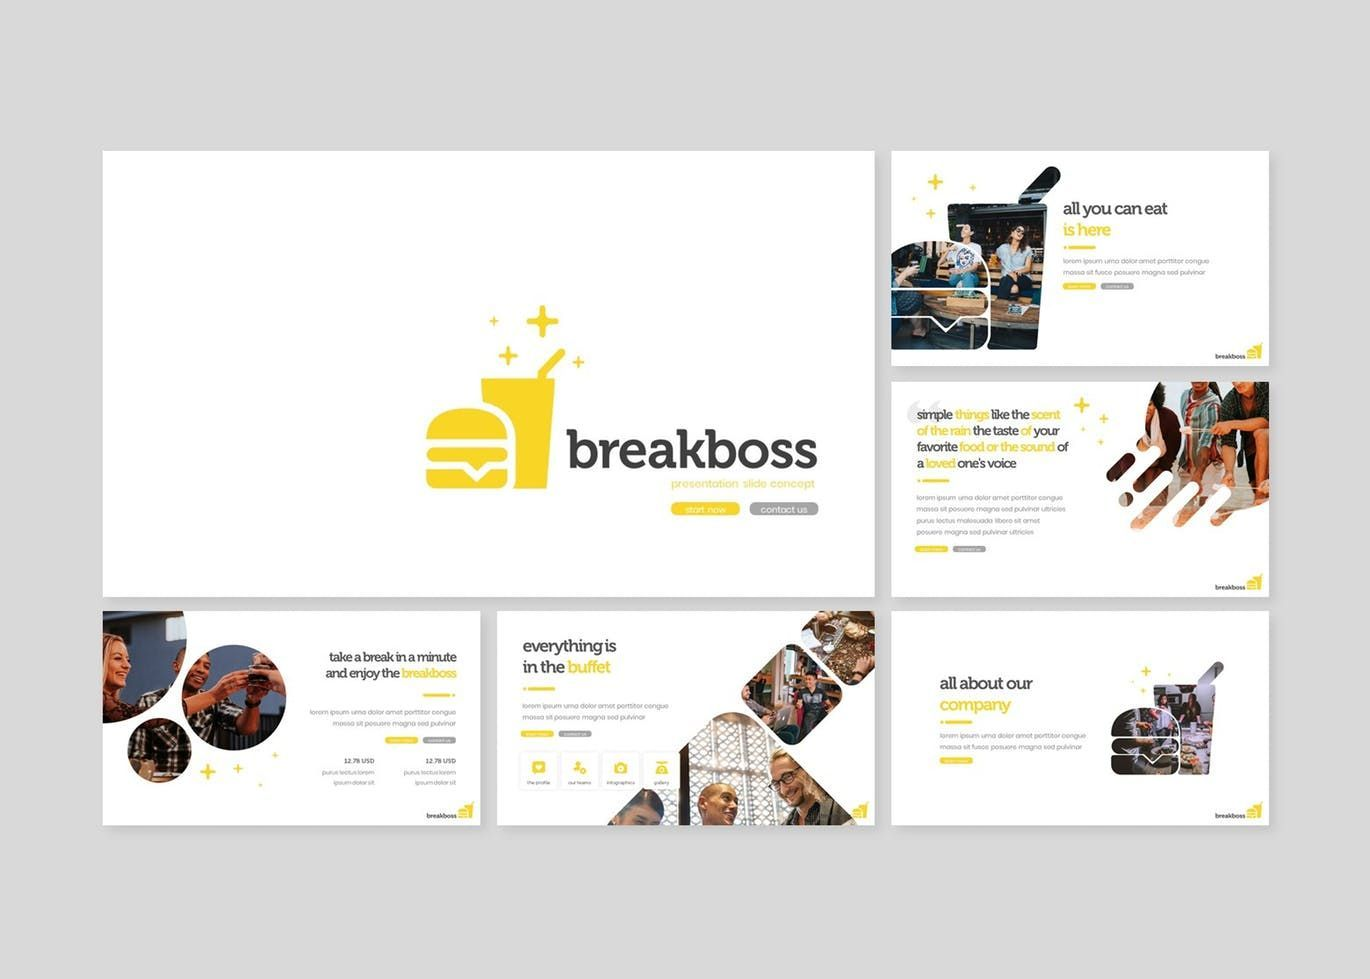 Breakboss - Google Slides Template, Slide 2, 07633, Presentation Templates — PoweredTemplate.com